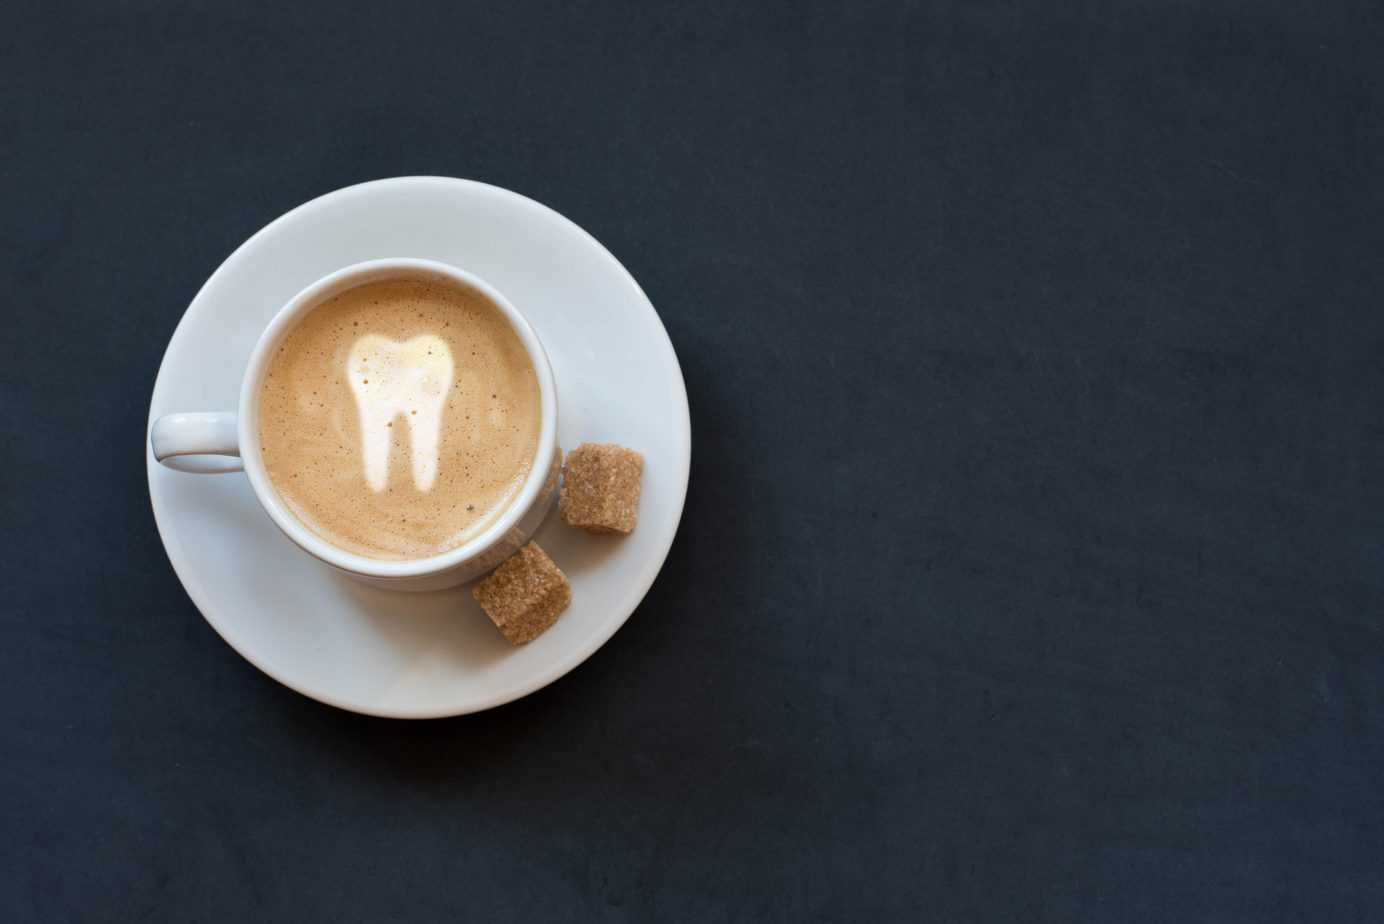 An image of a cup of coffee